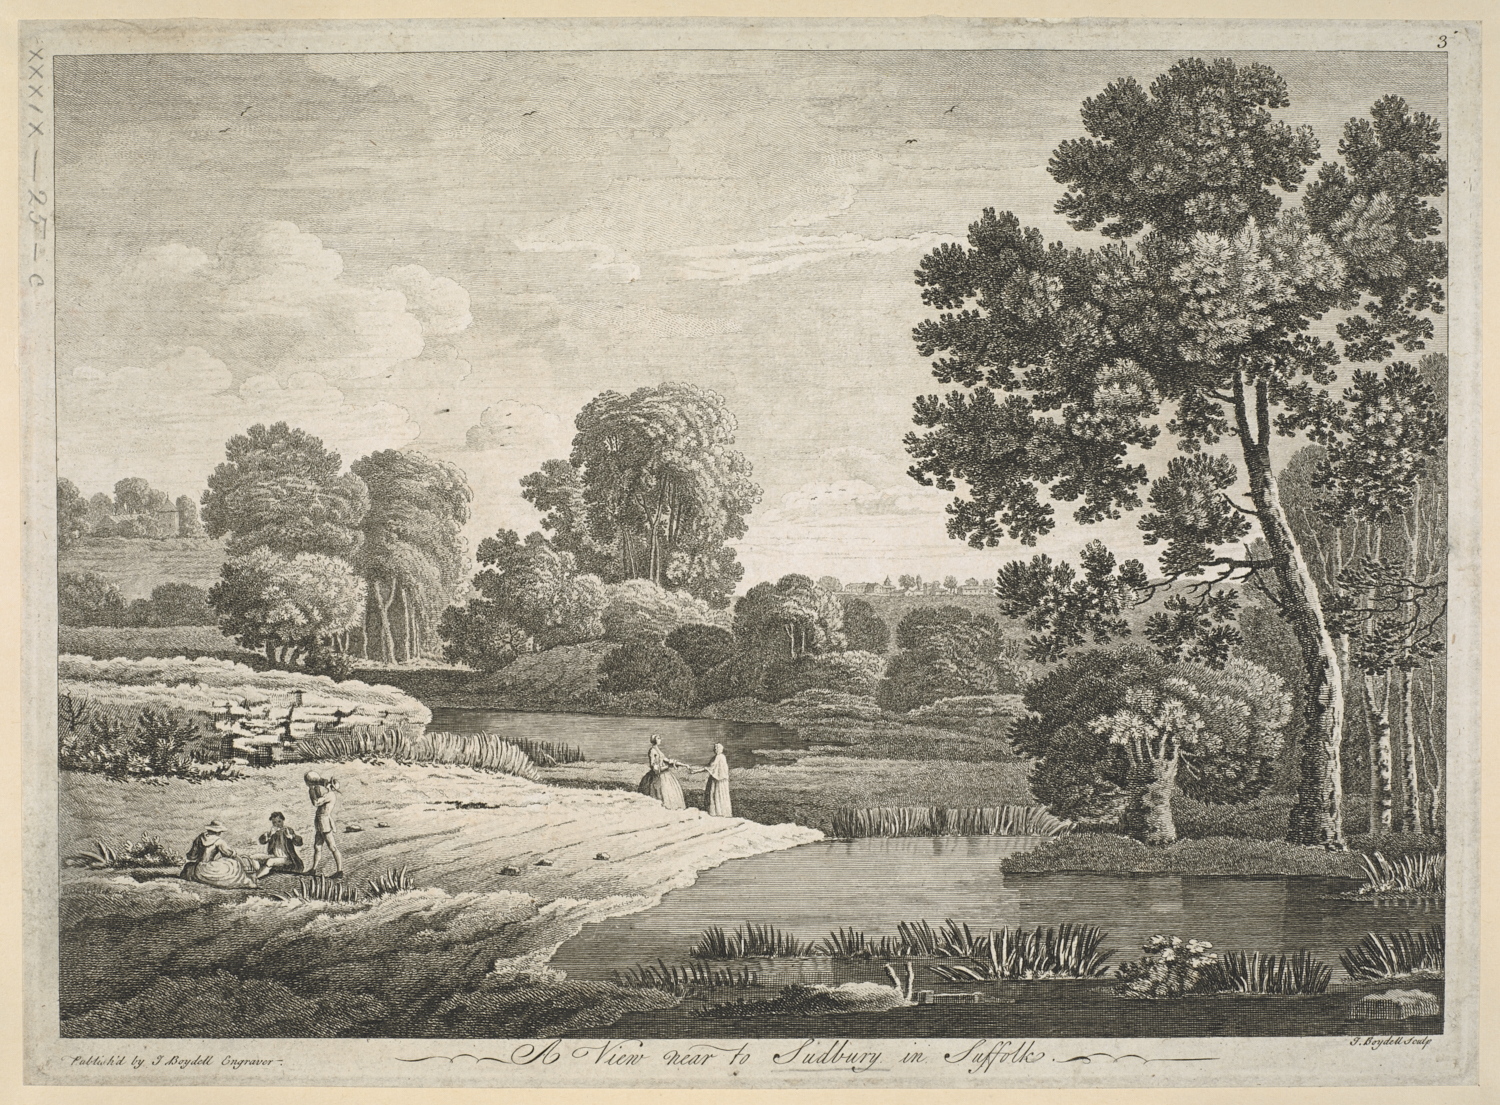 John Boydell (1720-1804) after Thomas Gainsborough (1727-88), A View near to Sudbury in Suffolk, London, John Boydell, about 1747, etching and engraving,  platemark 255 x 350 mm, image 235 x 335 mm, Maps K.Top.39.25.c.